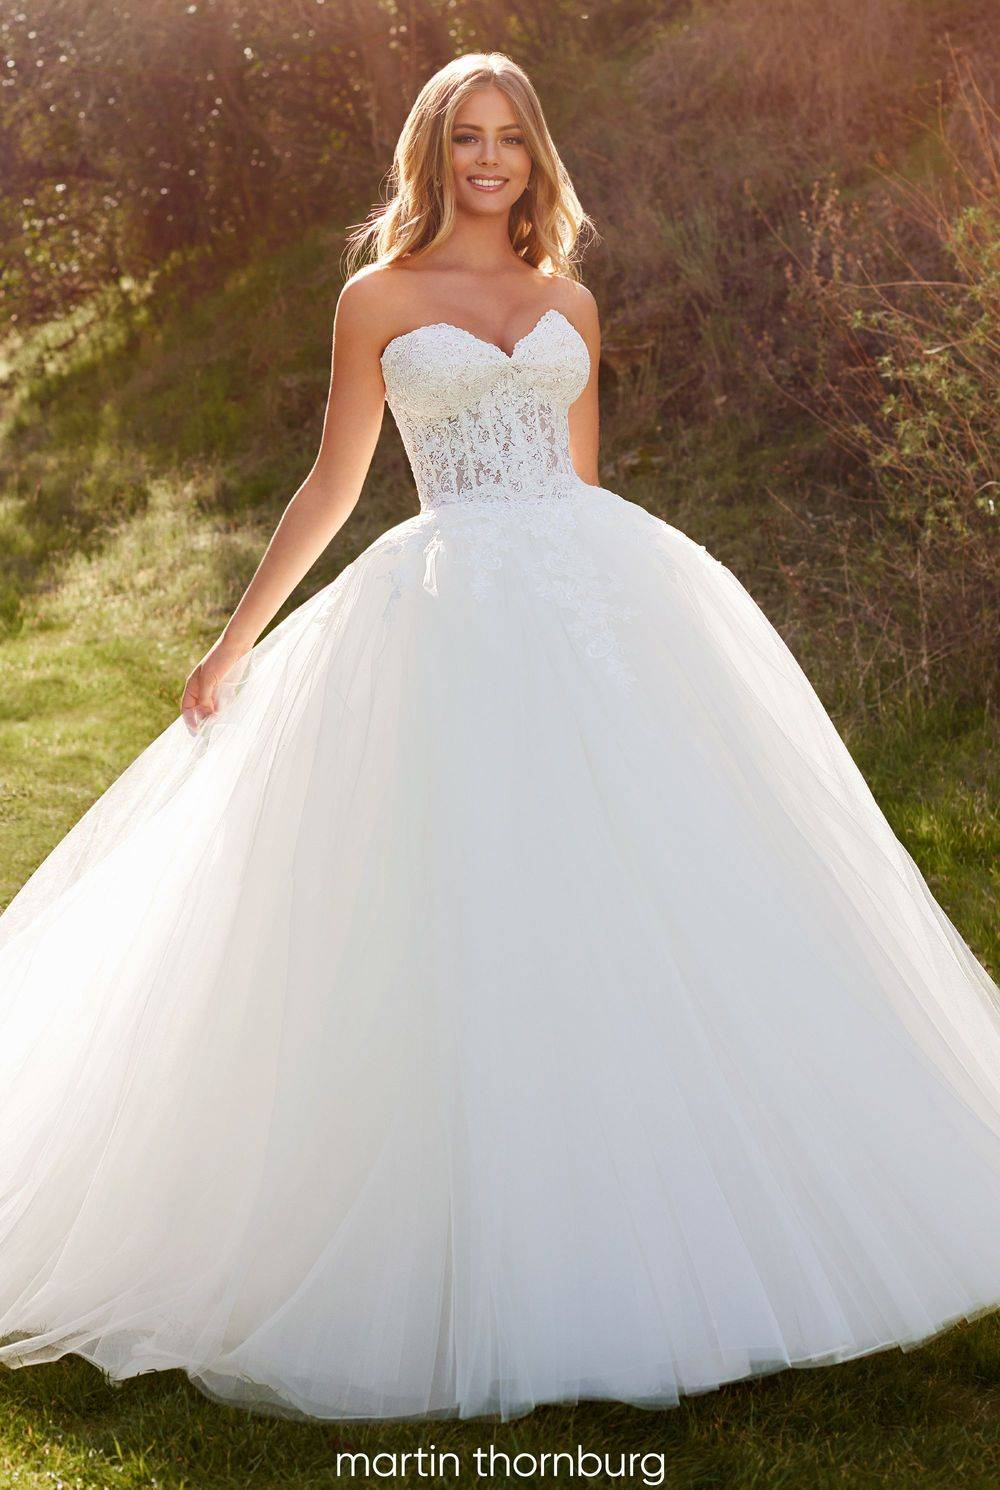 Ball gown tulle wedding dress in strood, rochester, kent, southeast kent, medway